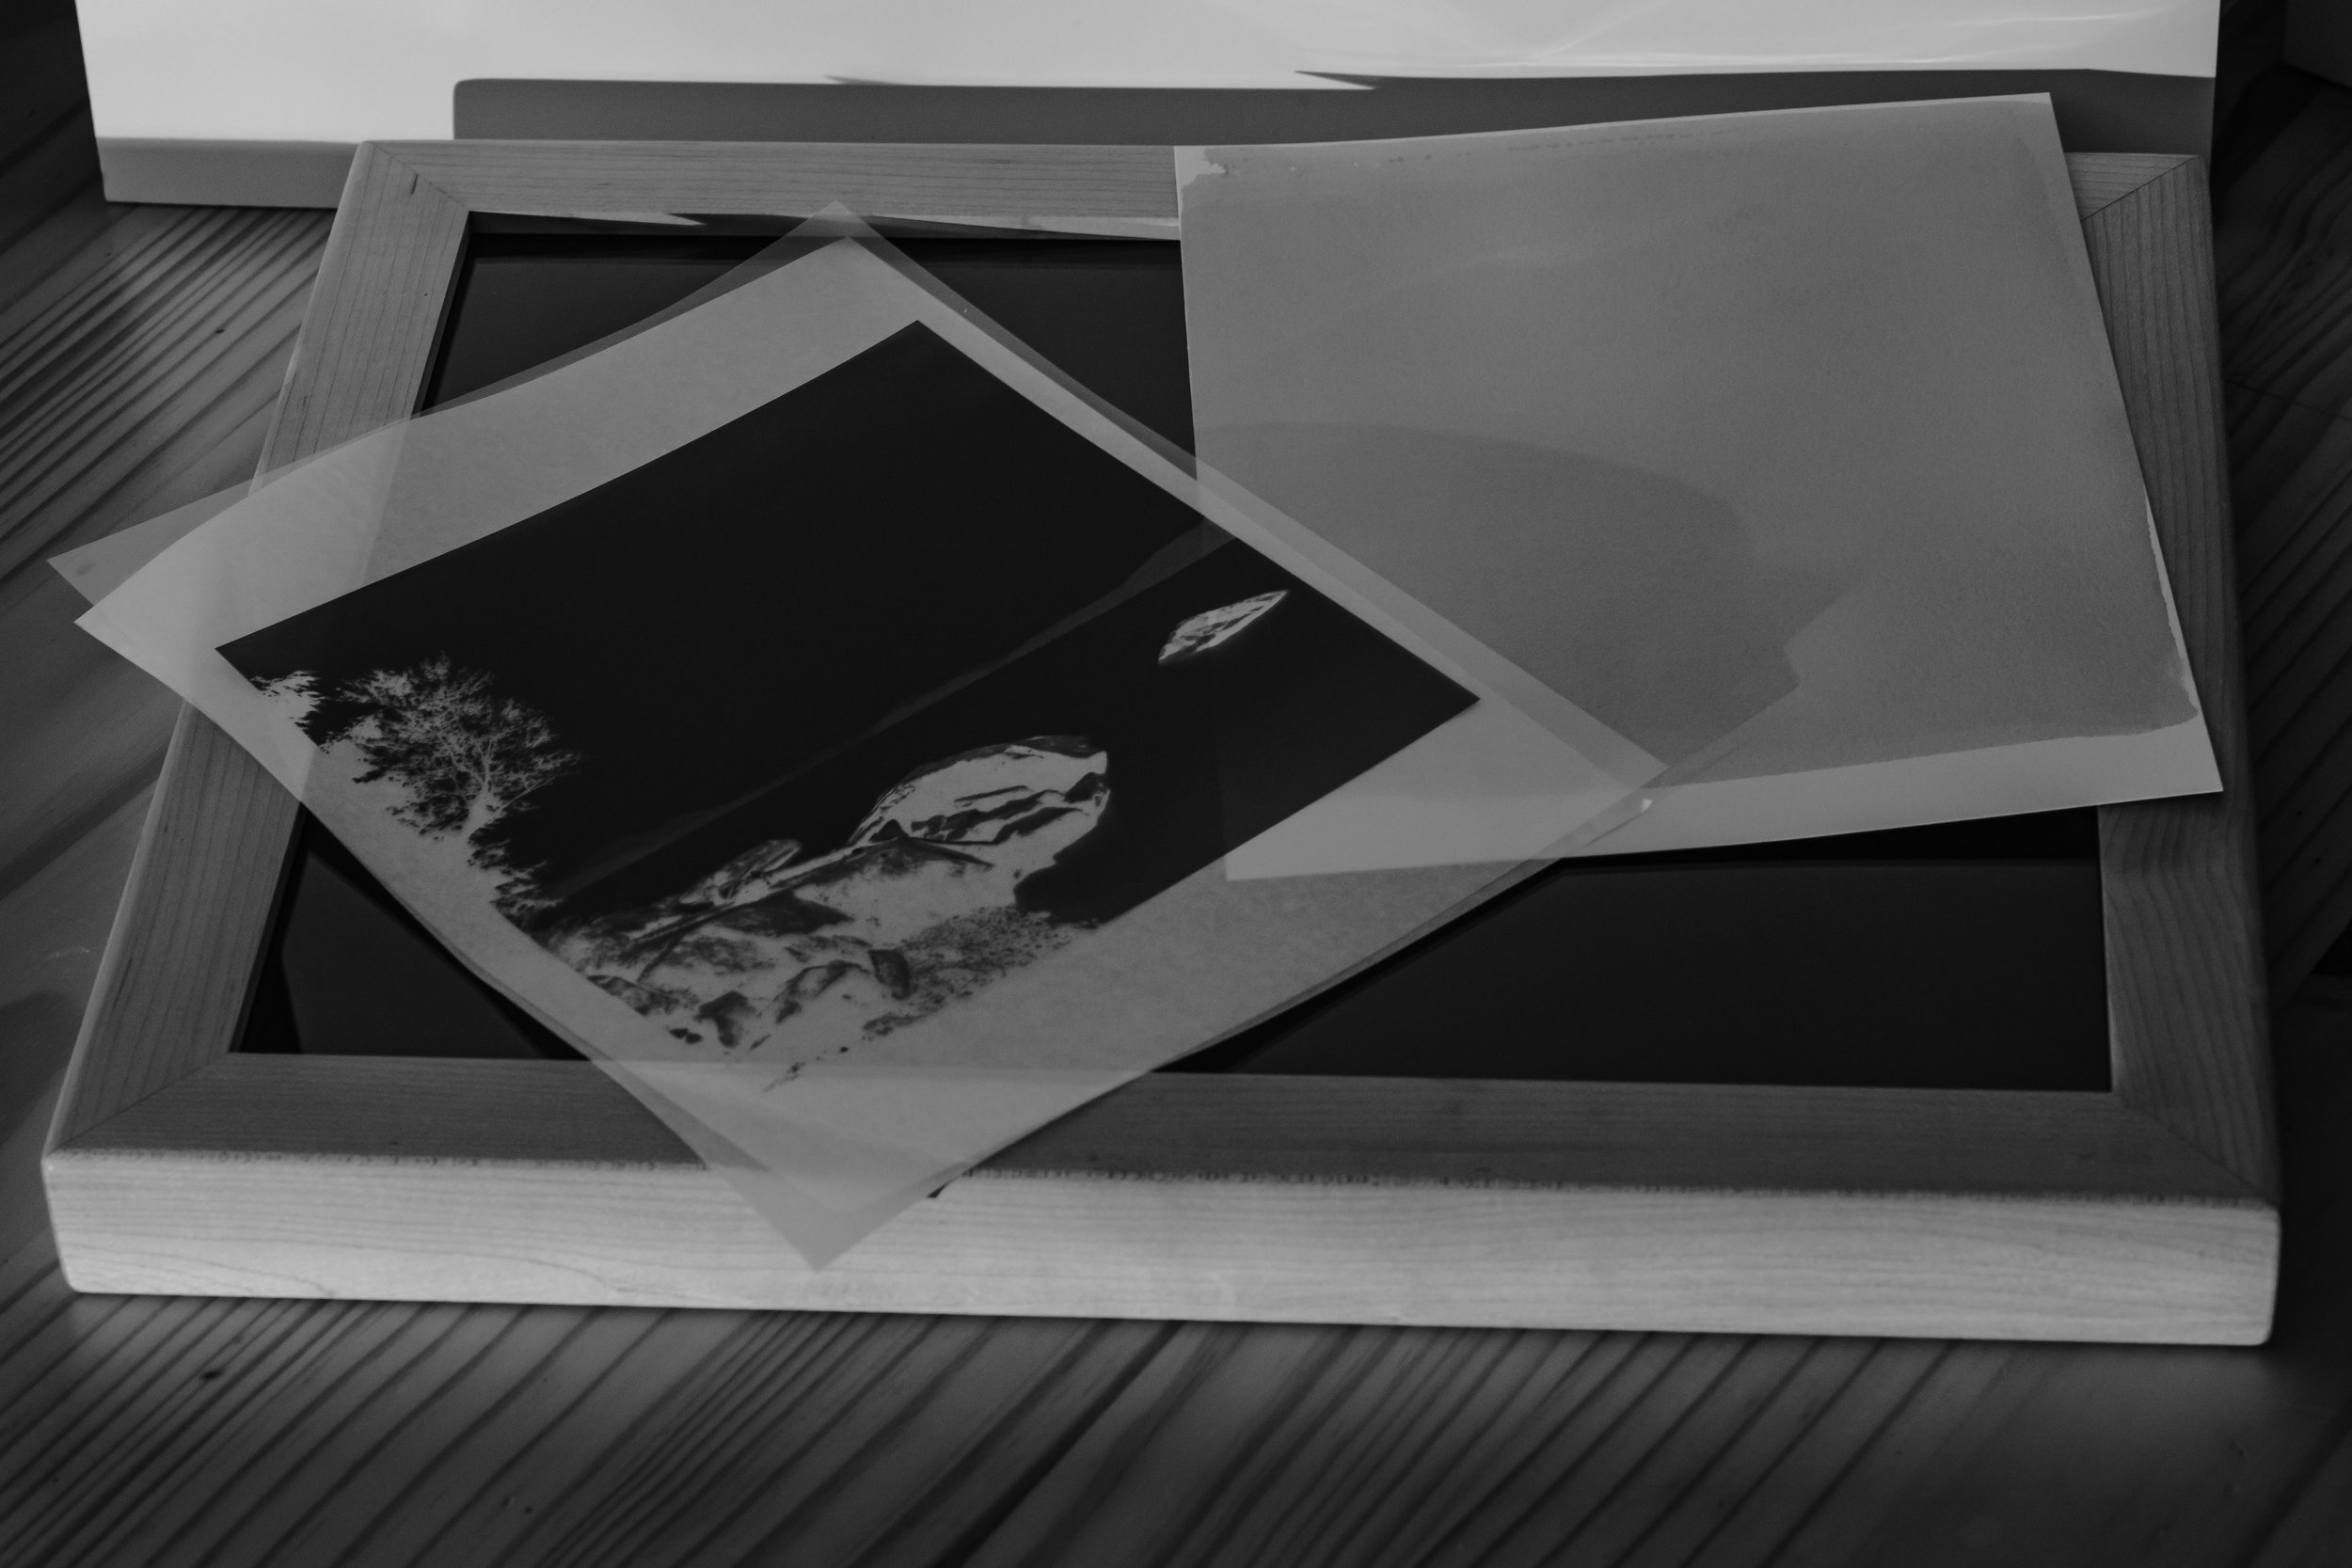 Exposure, Part I: - When the emulsion has dried, it is now time to place the negative in the desired position for exposure. Since this is a contact printing process (meaning you do not use a photographic enlarger) the negative size dictates the size of the final print. So, an 8x10 inch negative will result in an 8x10 inch print.Negatives can be made traditionally with a Large Format camera (4x5, 5x7, 8x10, 11x14, etc..), or digitally. Here is a link to a great source on printing digital negatives: